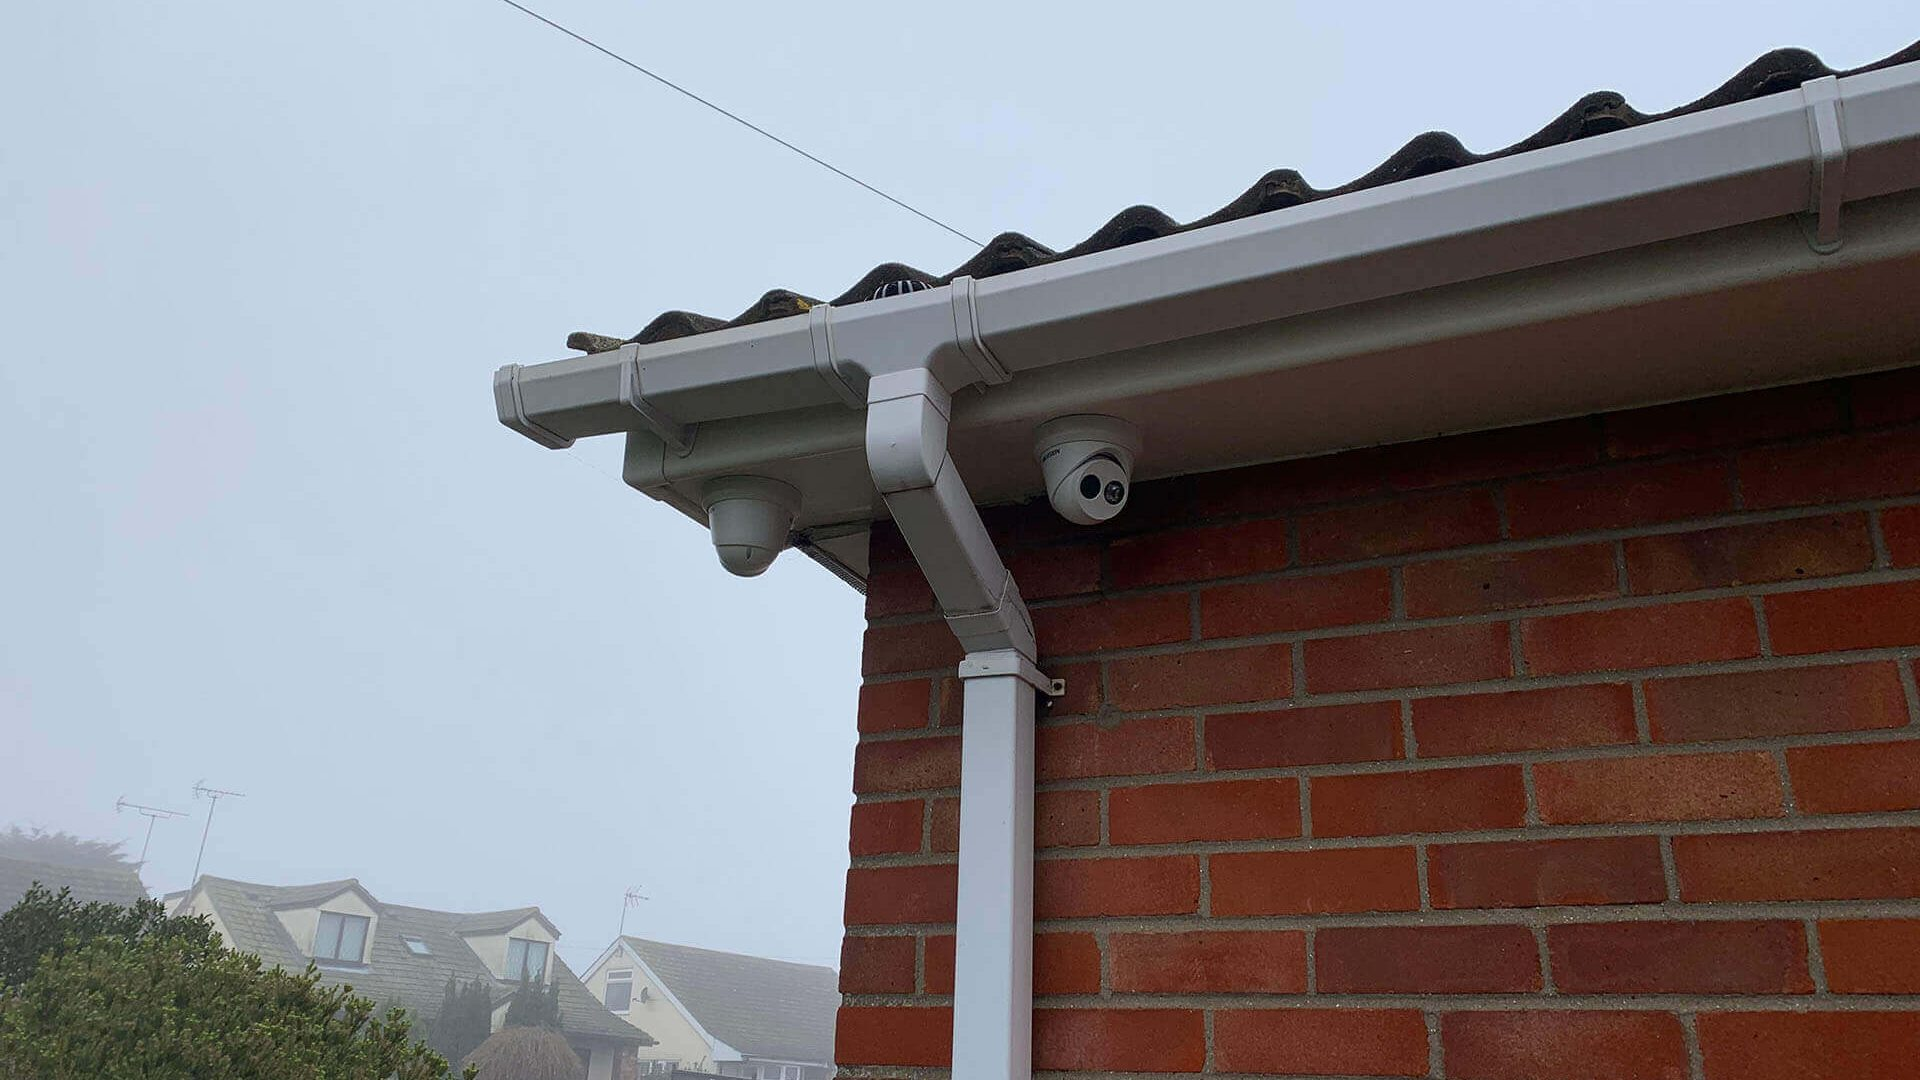 6MP CCTV Installation in Clacton-on-Sea